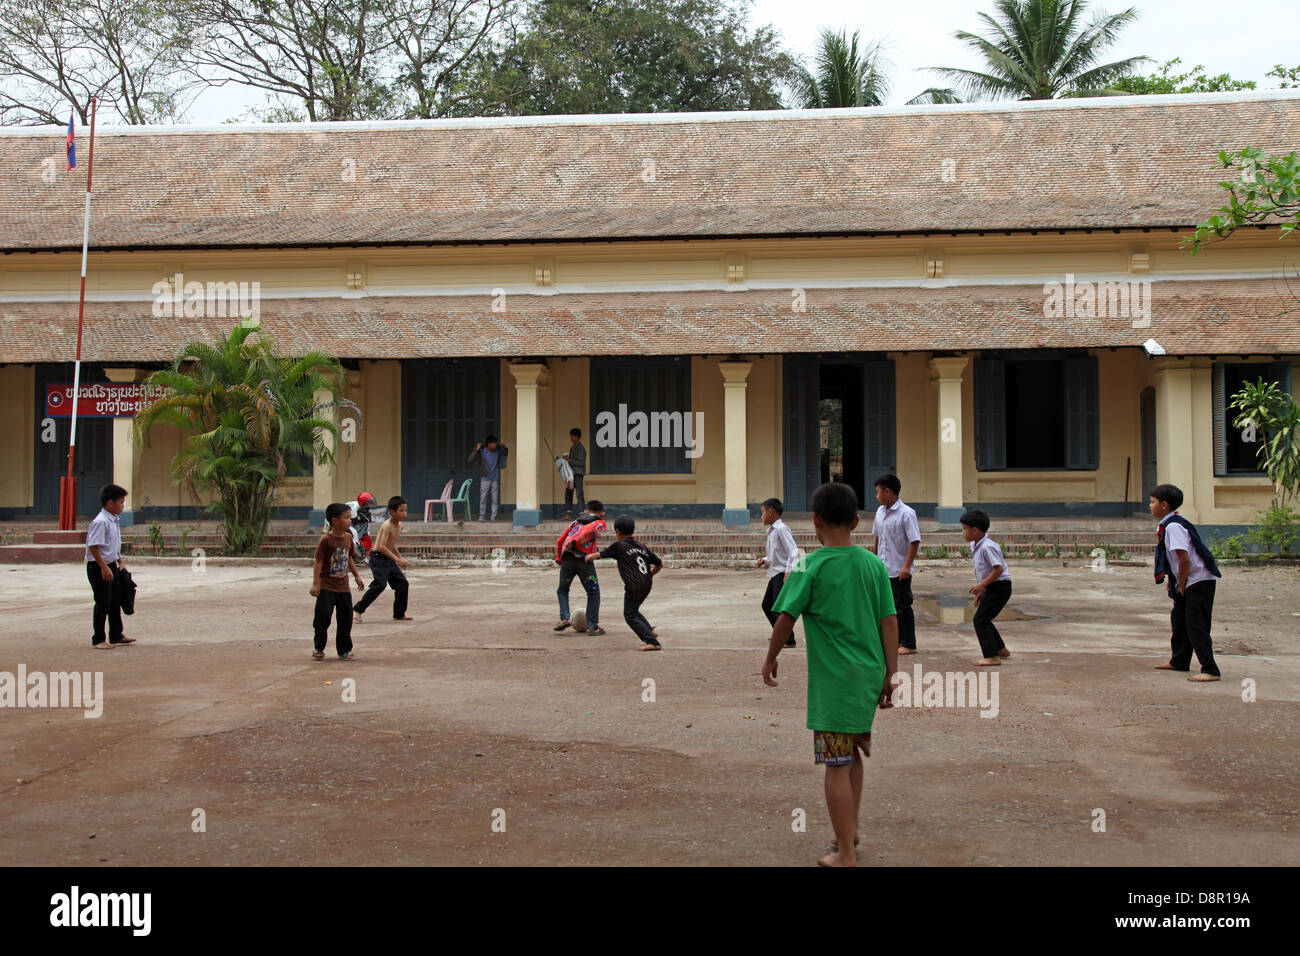 School children playing football at school ground, Luang Prabang, Laos - Stock Image